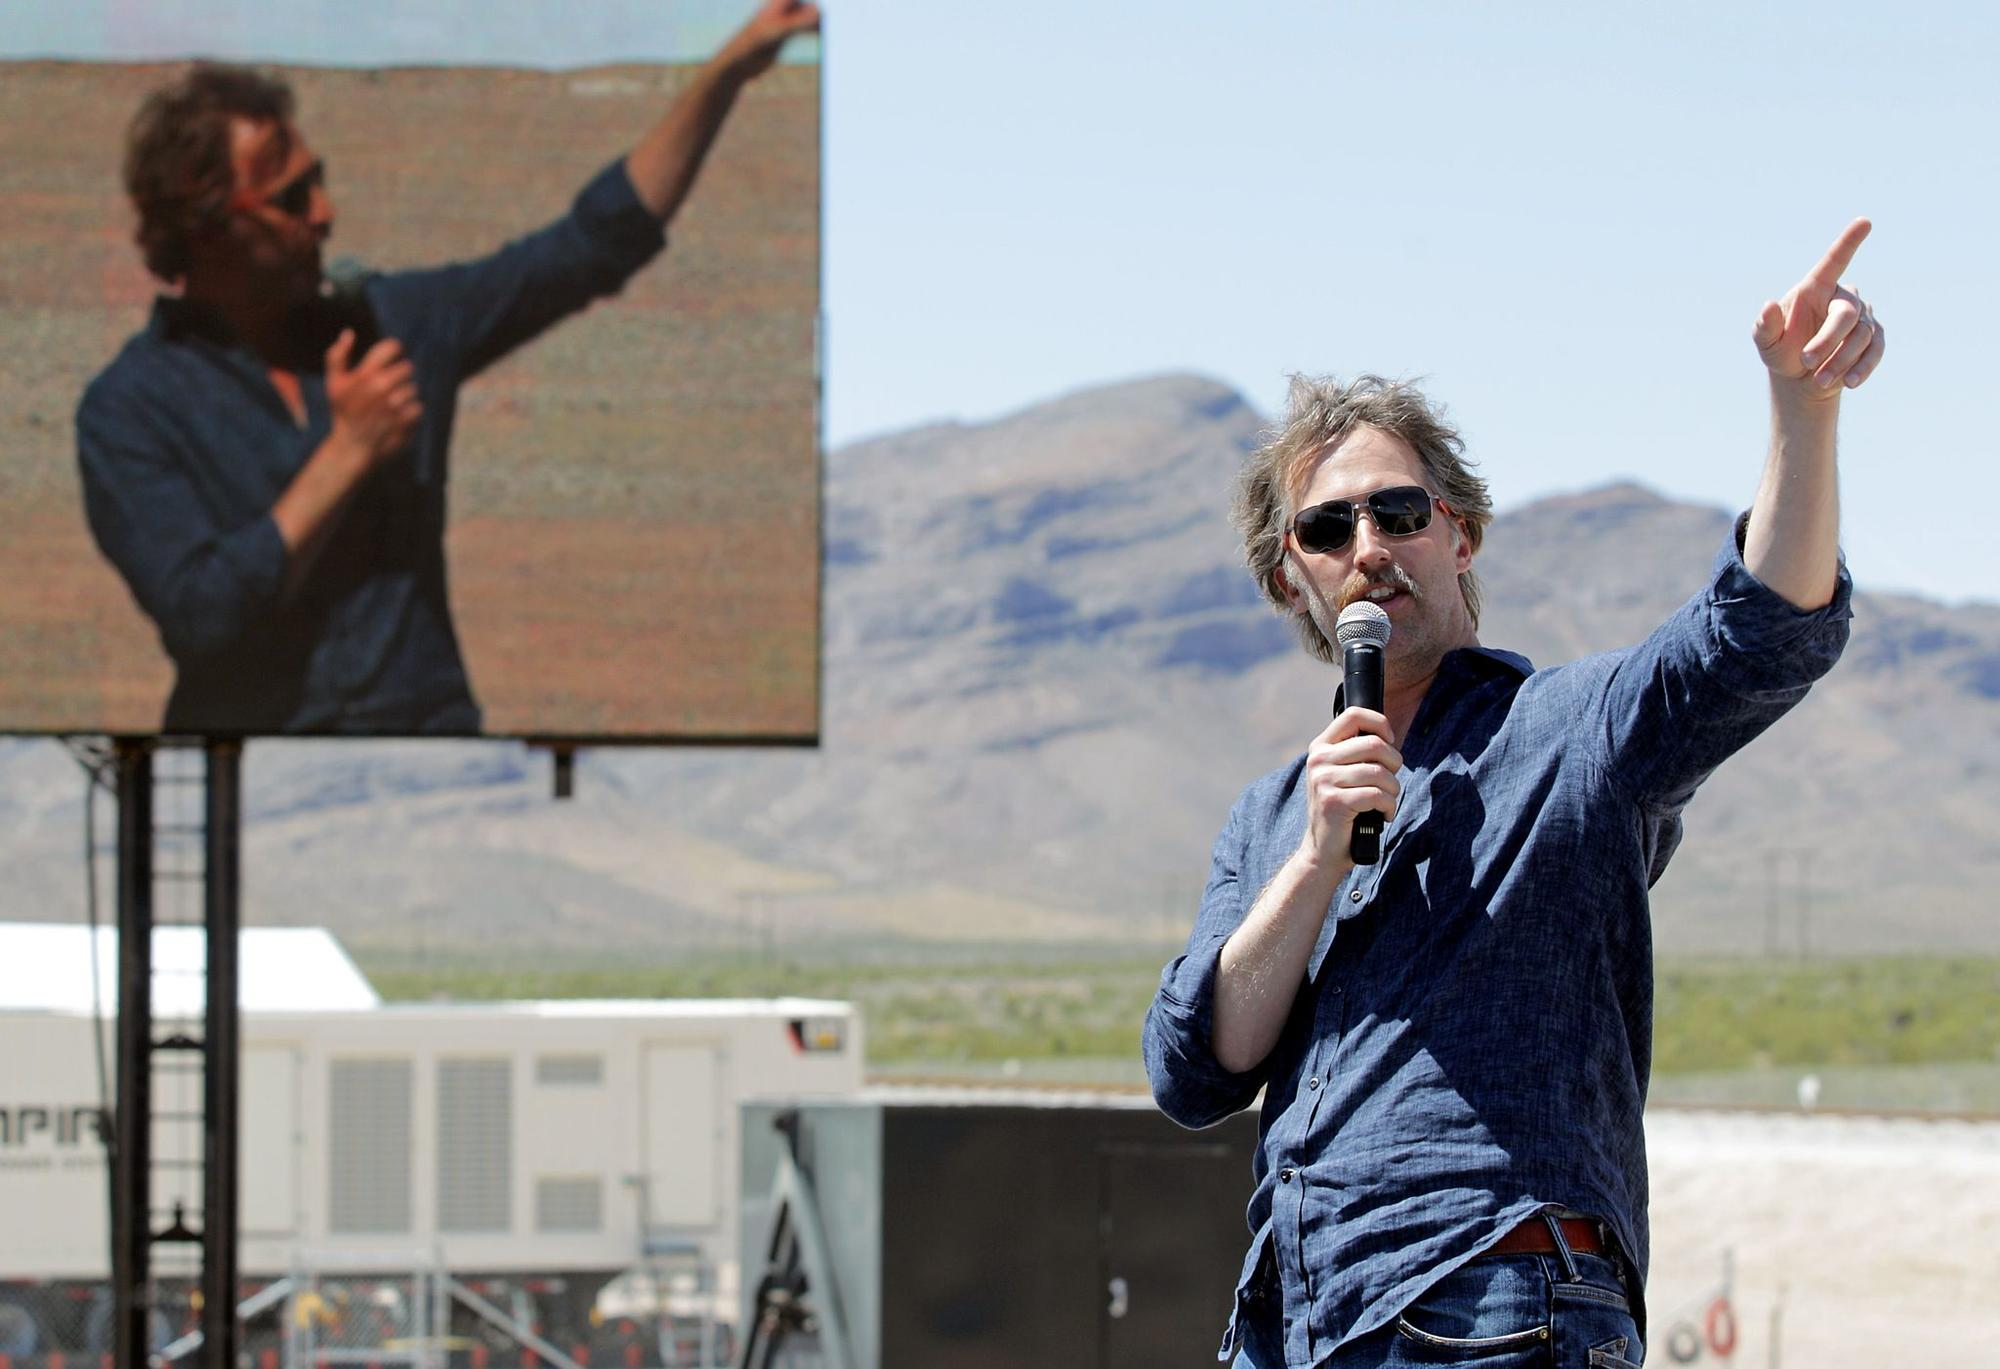 Brogan BamBrogan, who has departed Hyperloop One, speaks at a technical demonstration put on by the company in May in North Las Vegas.